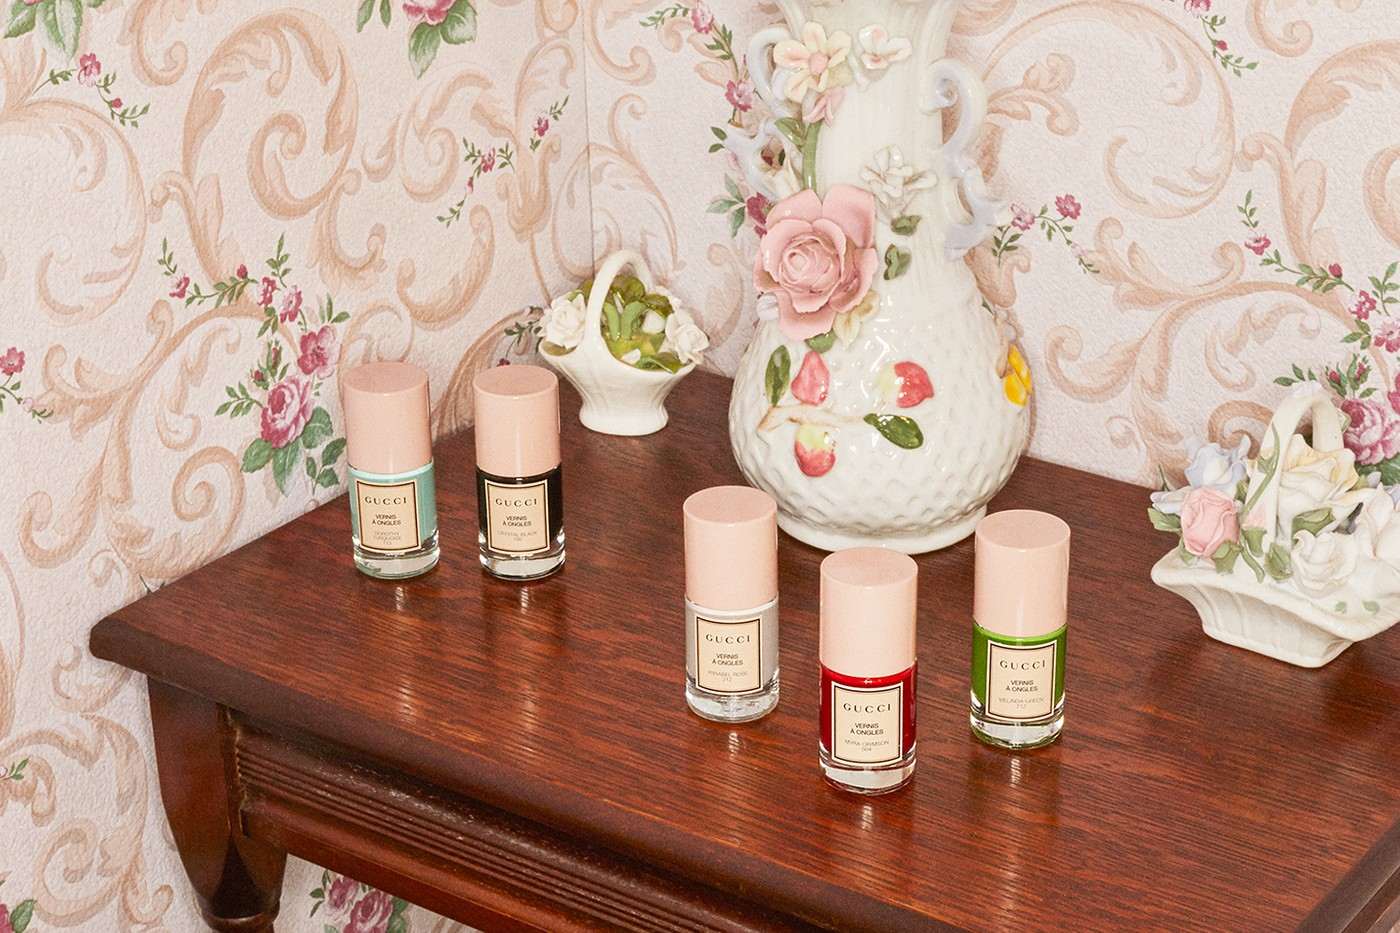 gucci beauty summer collection nail polish makeup release alessandro michele